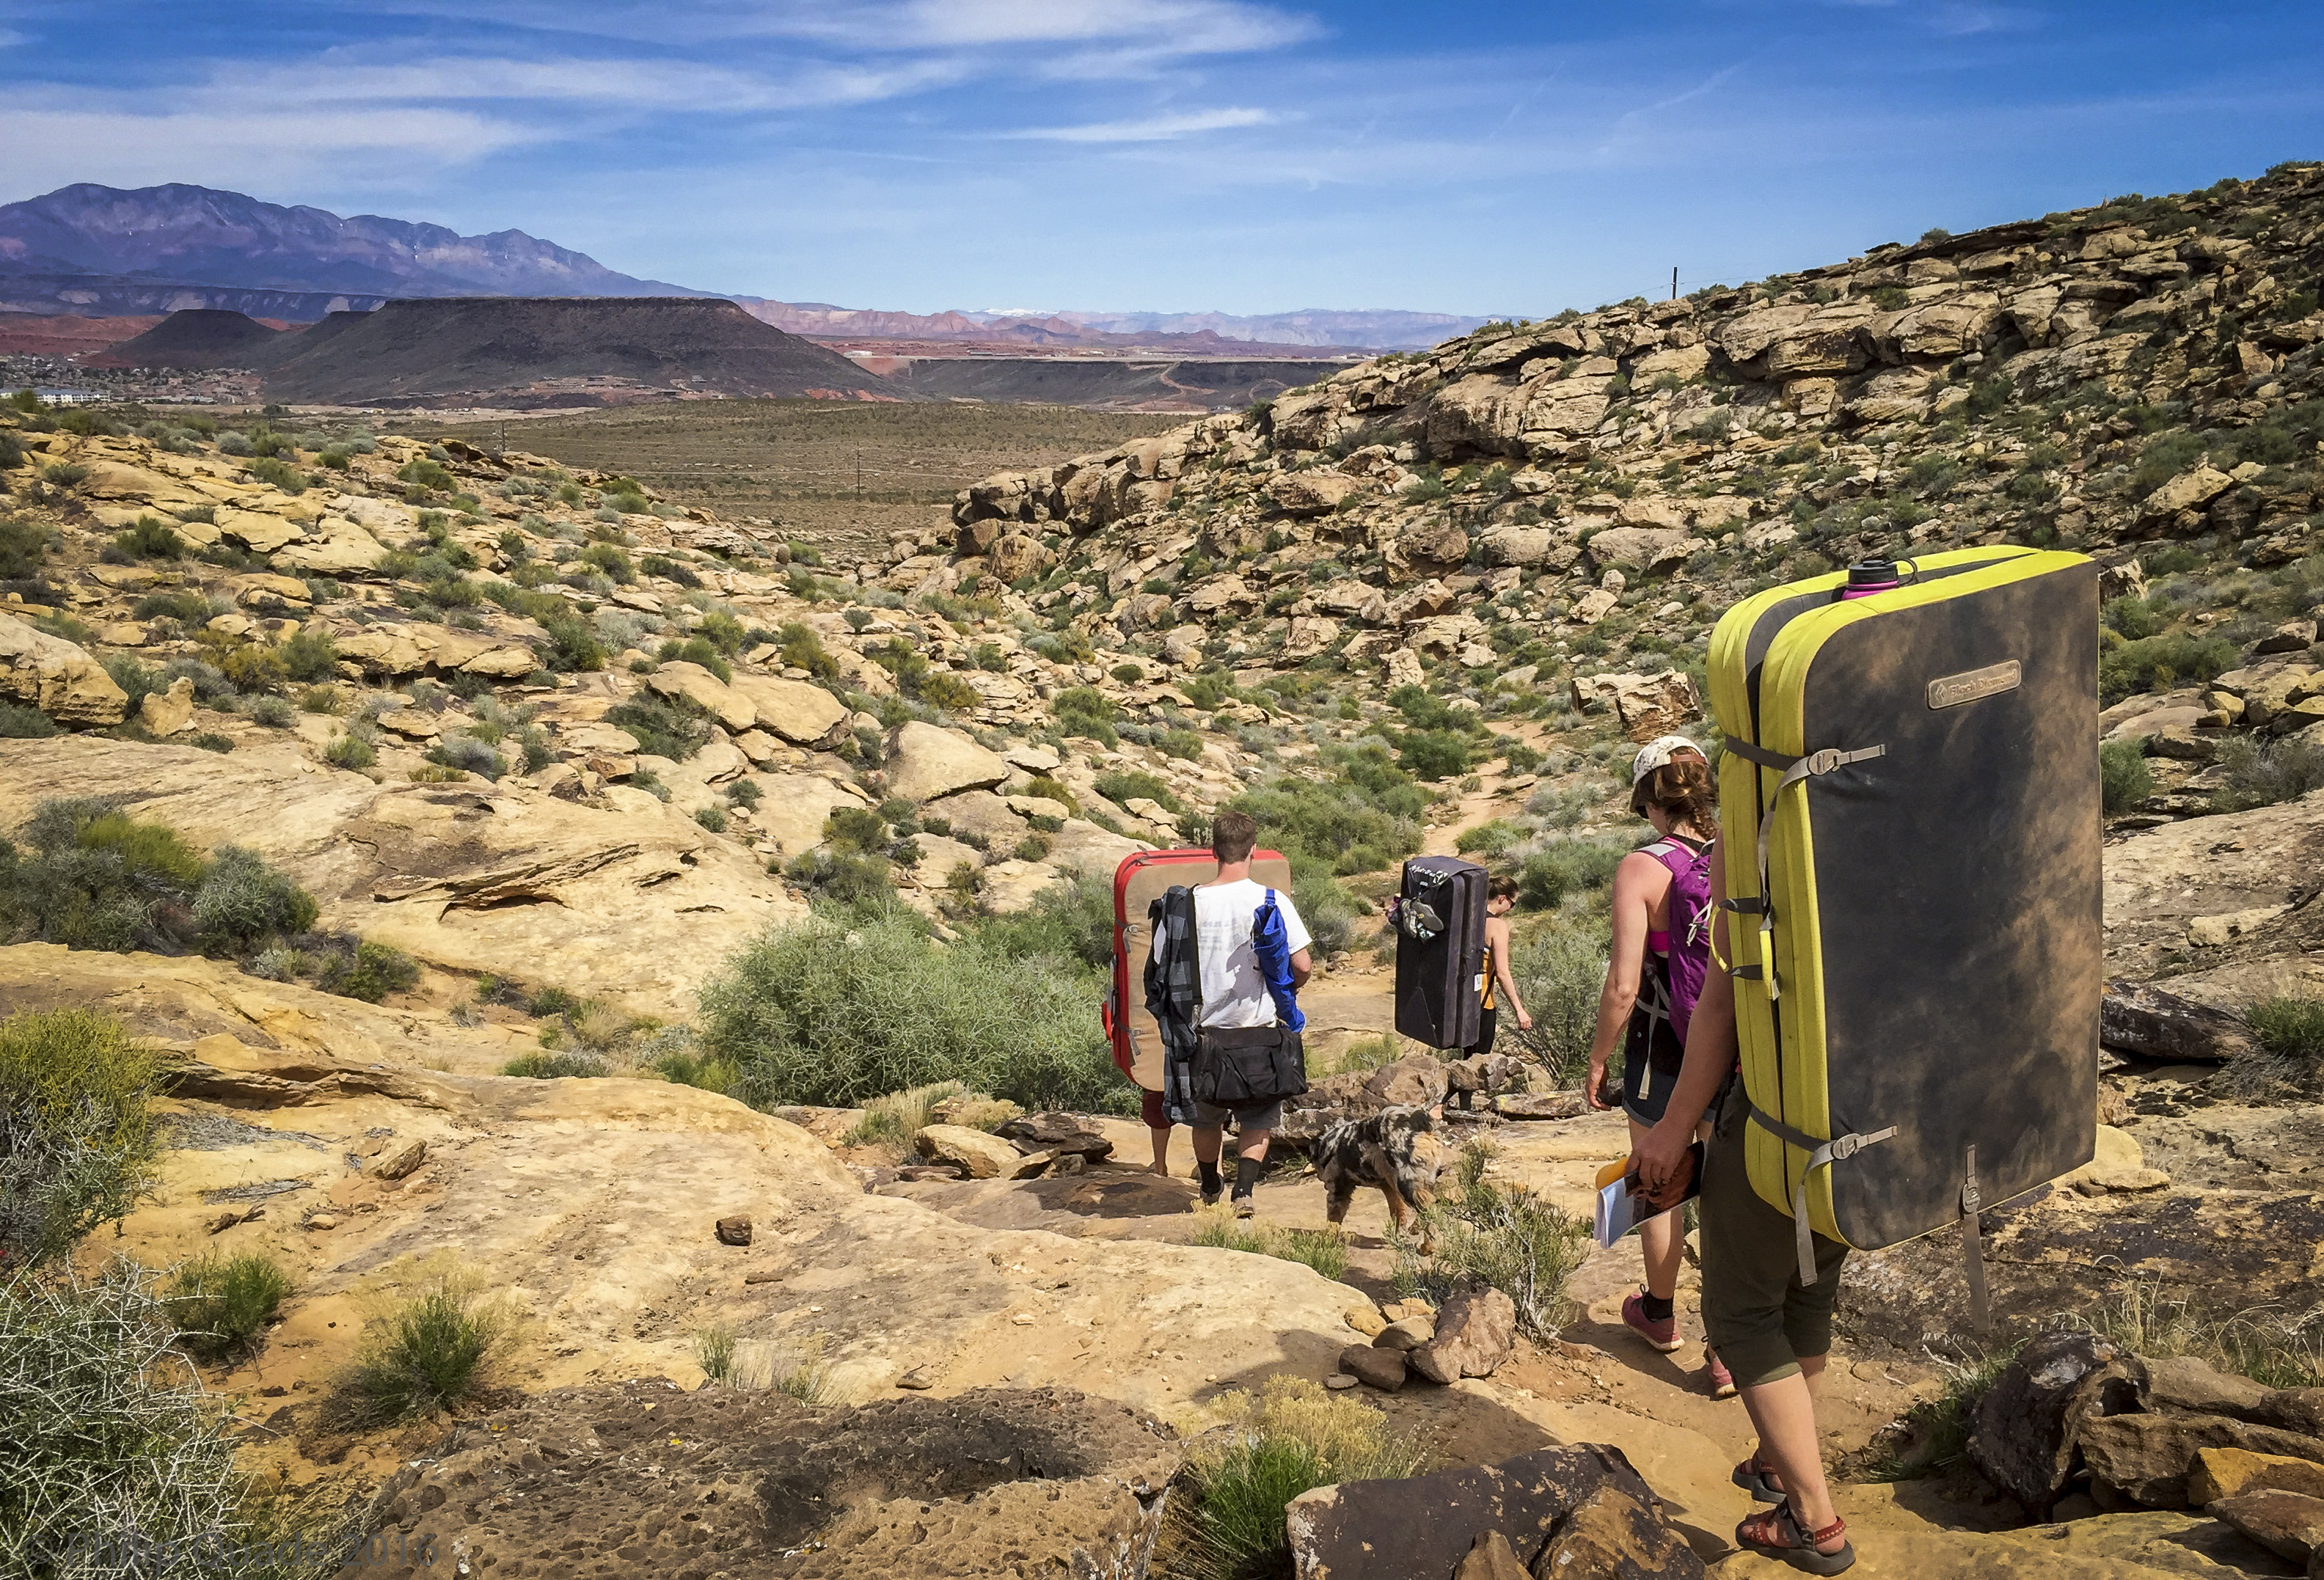 Live Out There Exclusive – Moe's Valley Bouldering: A Beginner's Guide